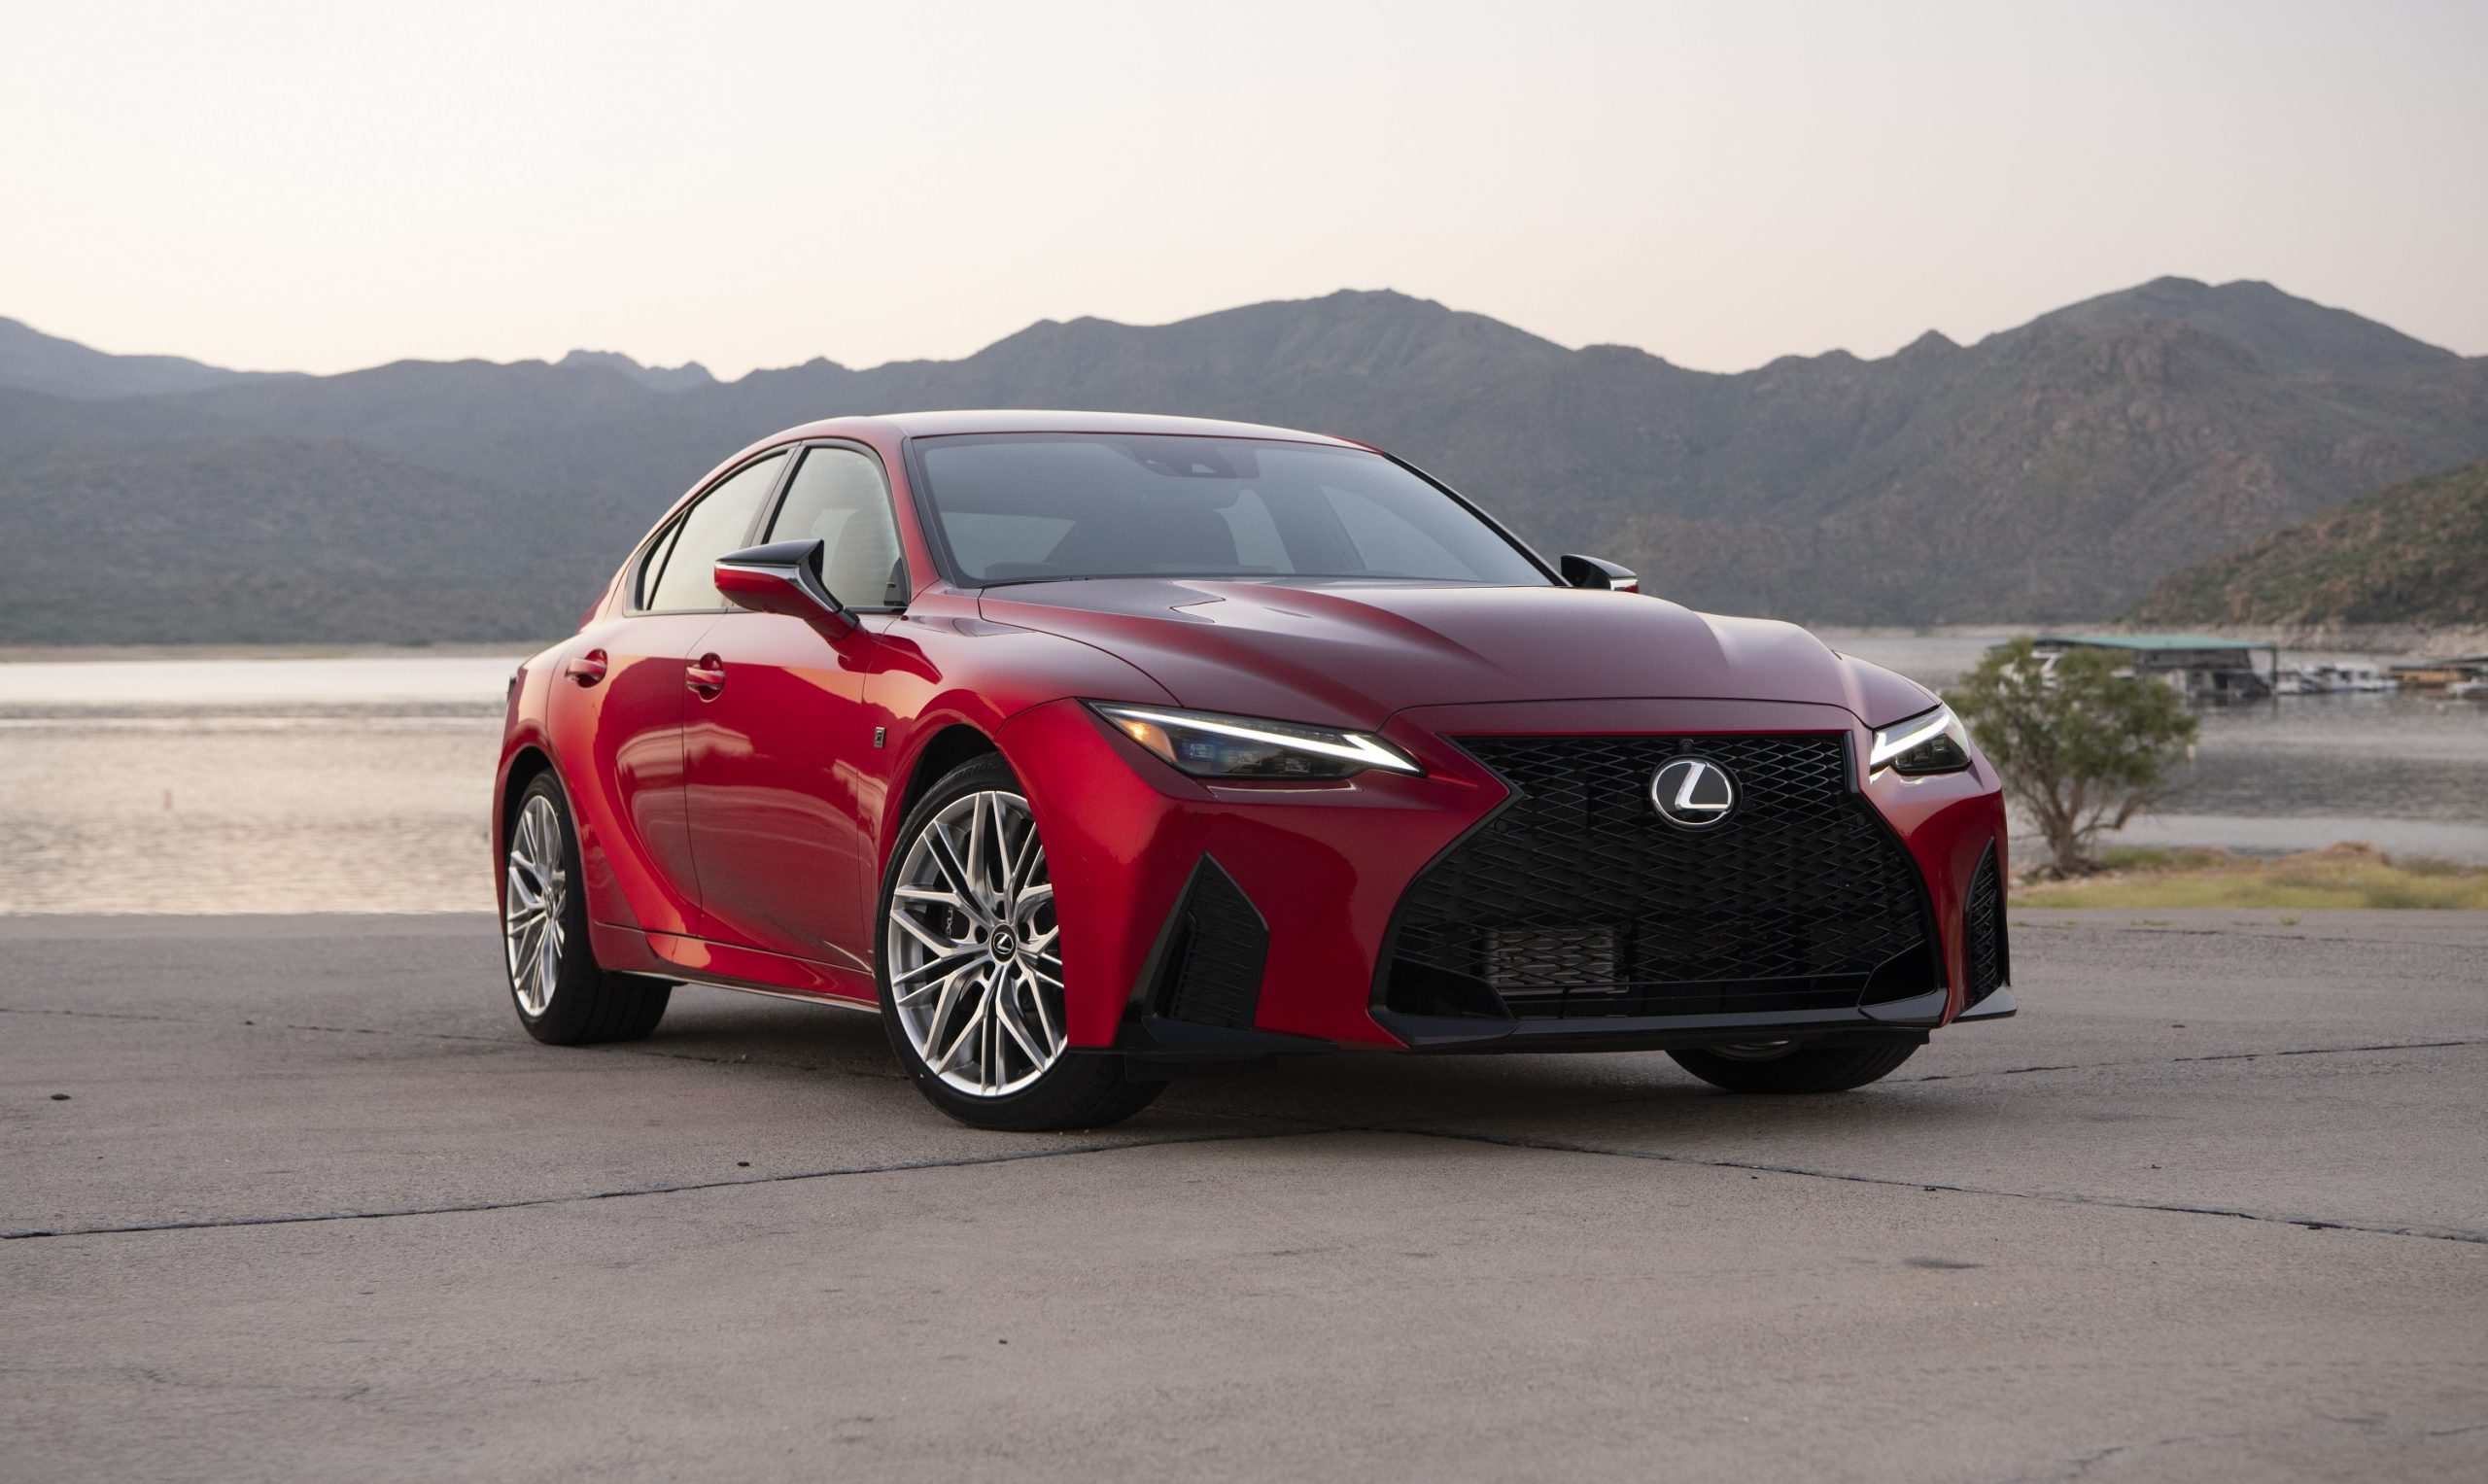 The 2022 Lexus IS 500 luxury car in red, shot from the front 3/4 angle